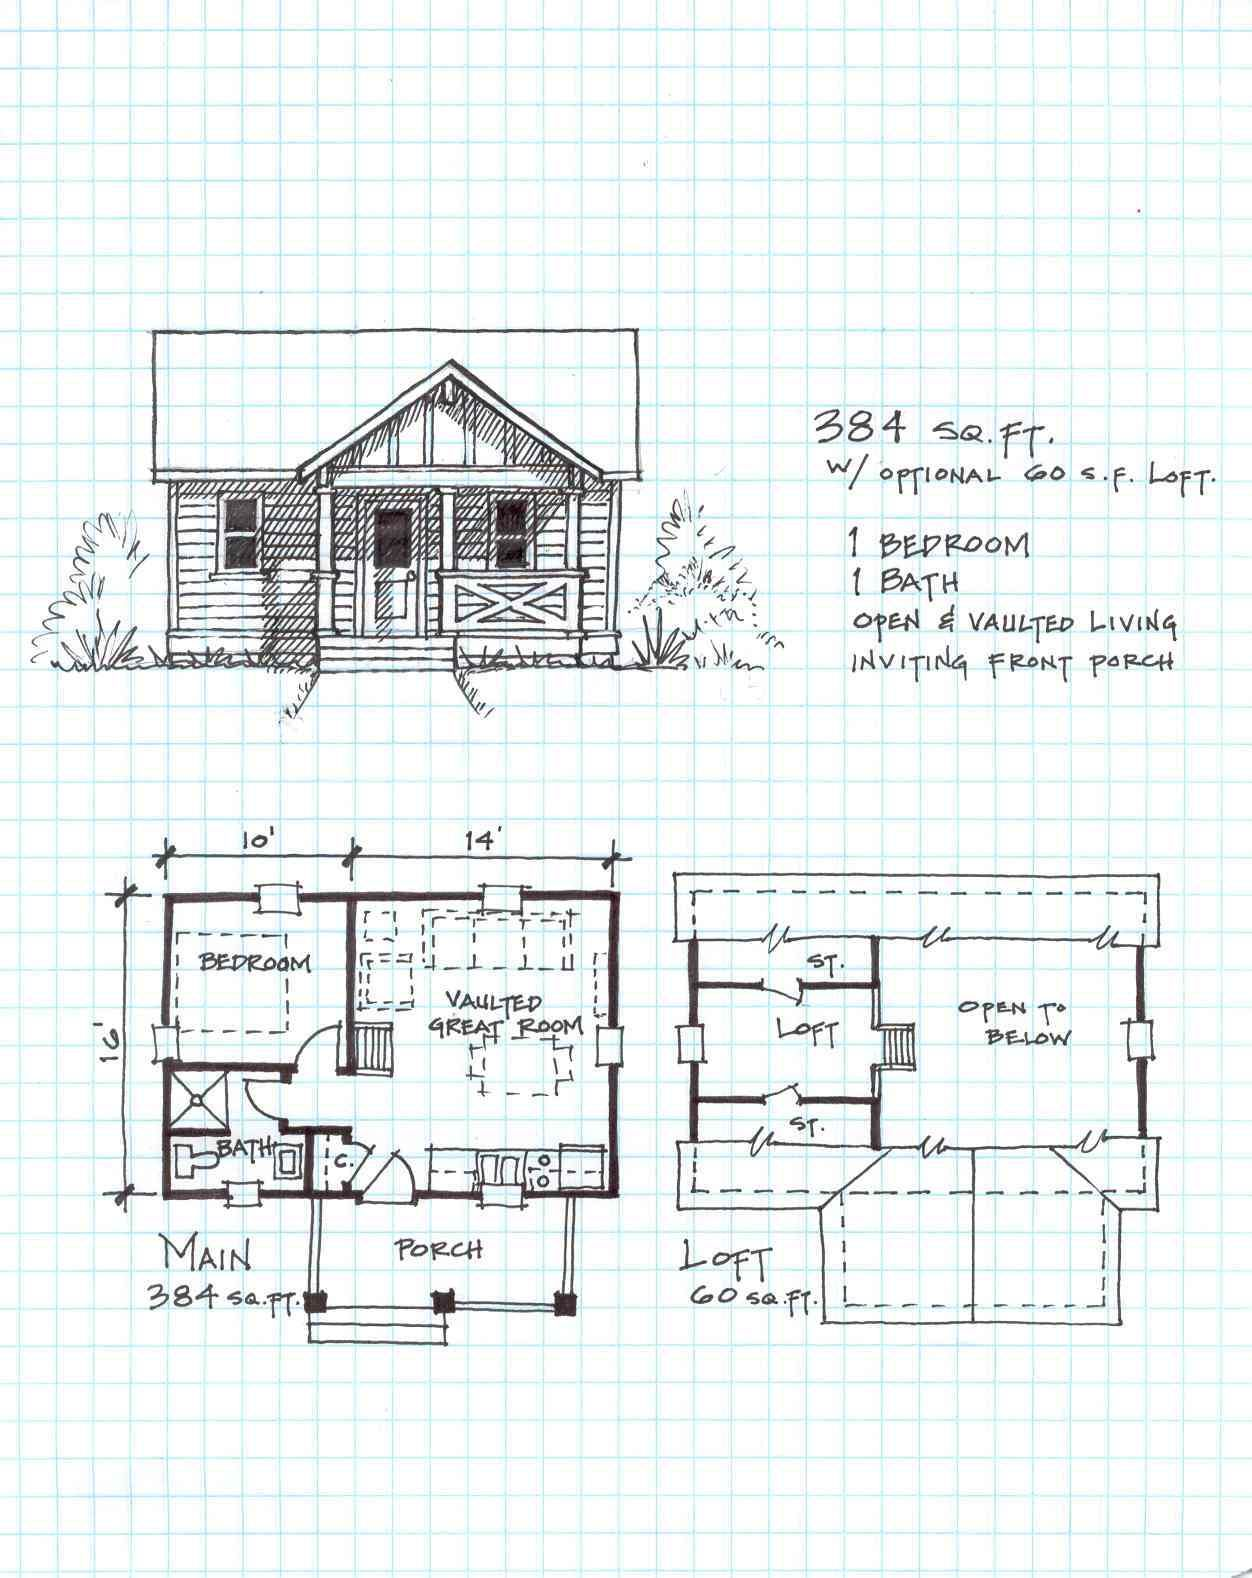 Garden Cottage E   One Level With Loft    Free Small Cabin Plans That Will  Knock Your Socks Off : Thesurvivalistblog